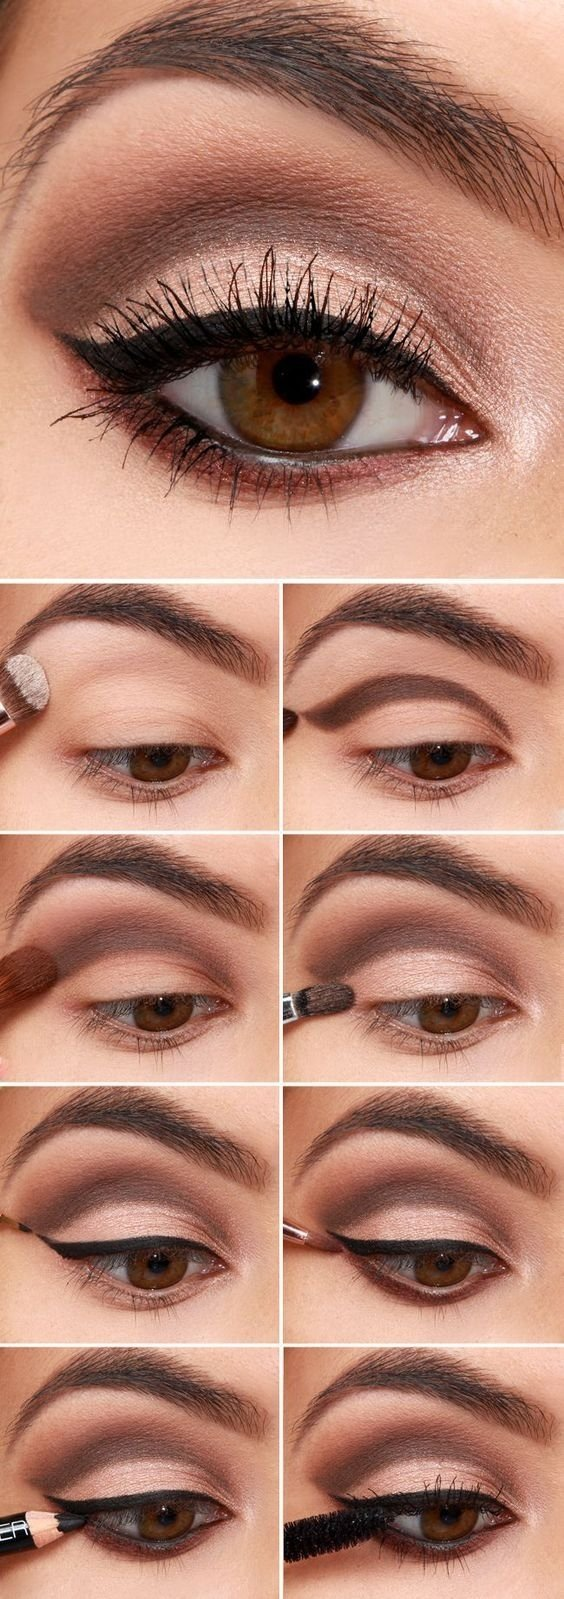 10 Awesome Cute Makeup Ideas For Brown Eyes 32 easy stepstep eyeshadow tutorials for beginners eyeshadow 1 2020